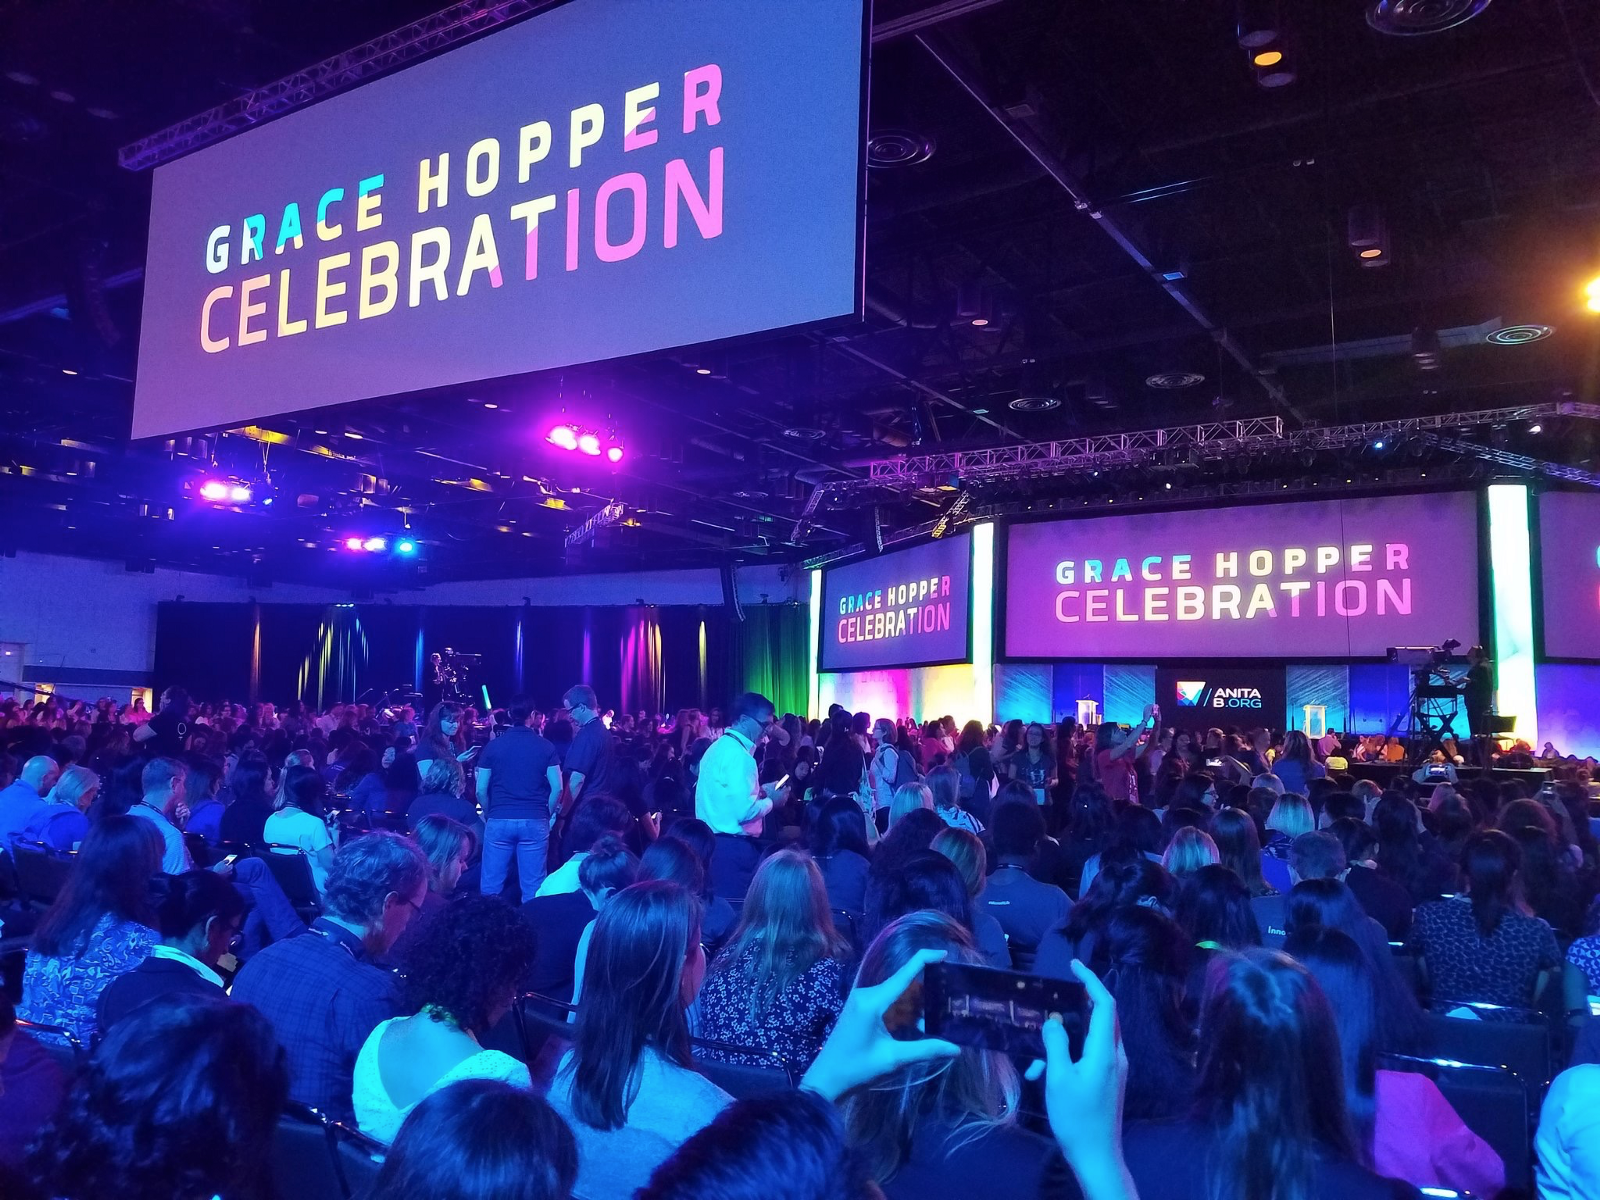 grace hopper celebration an incredible experience you never want to miss